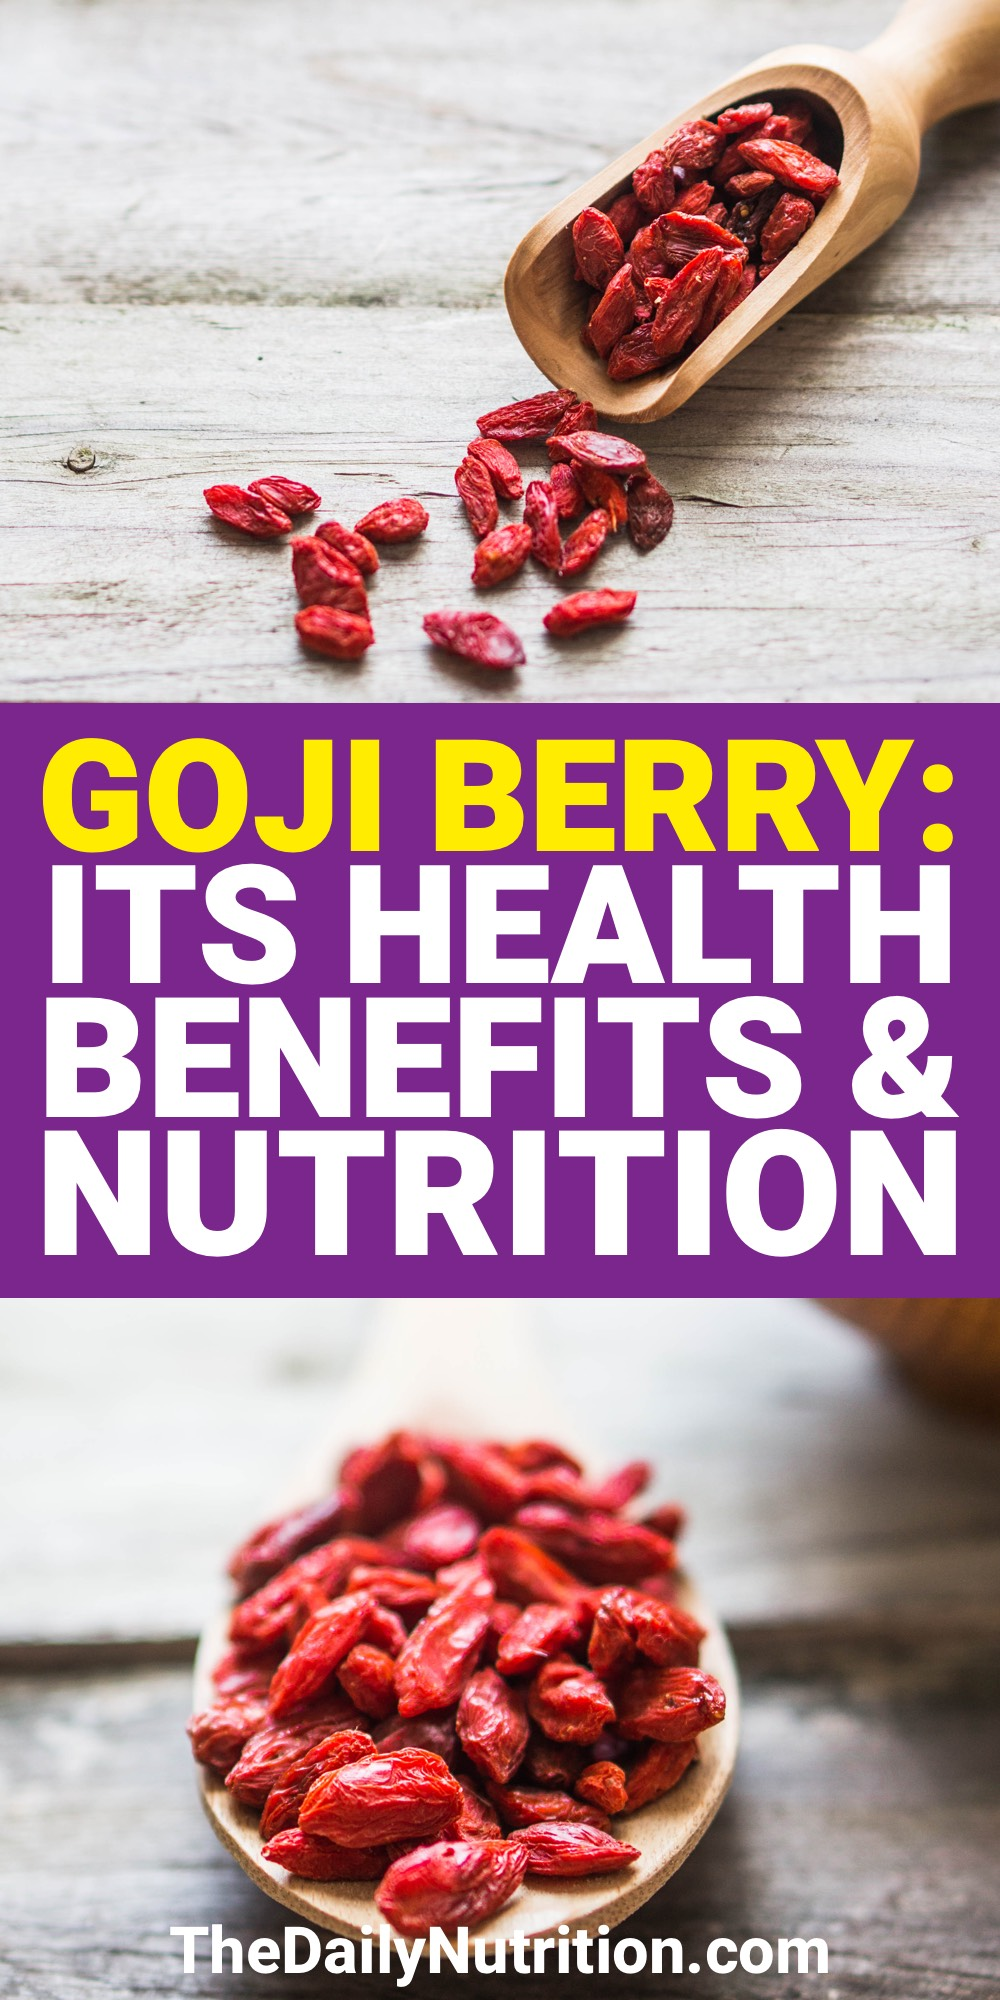 The goji berry is extremely healthy. Goji berry benefits are unlike any other fruit. Find out the benefits here.